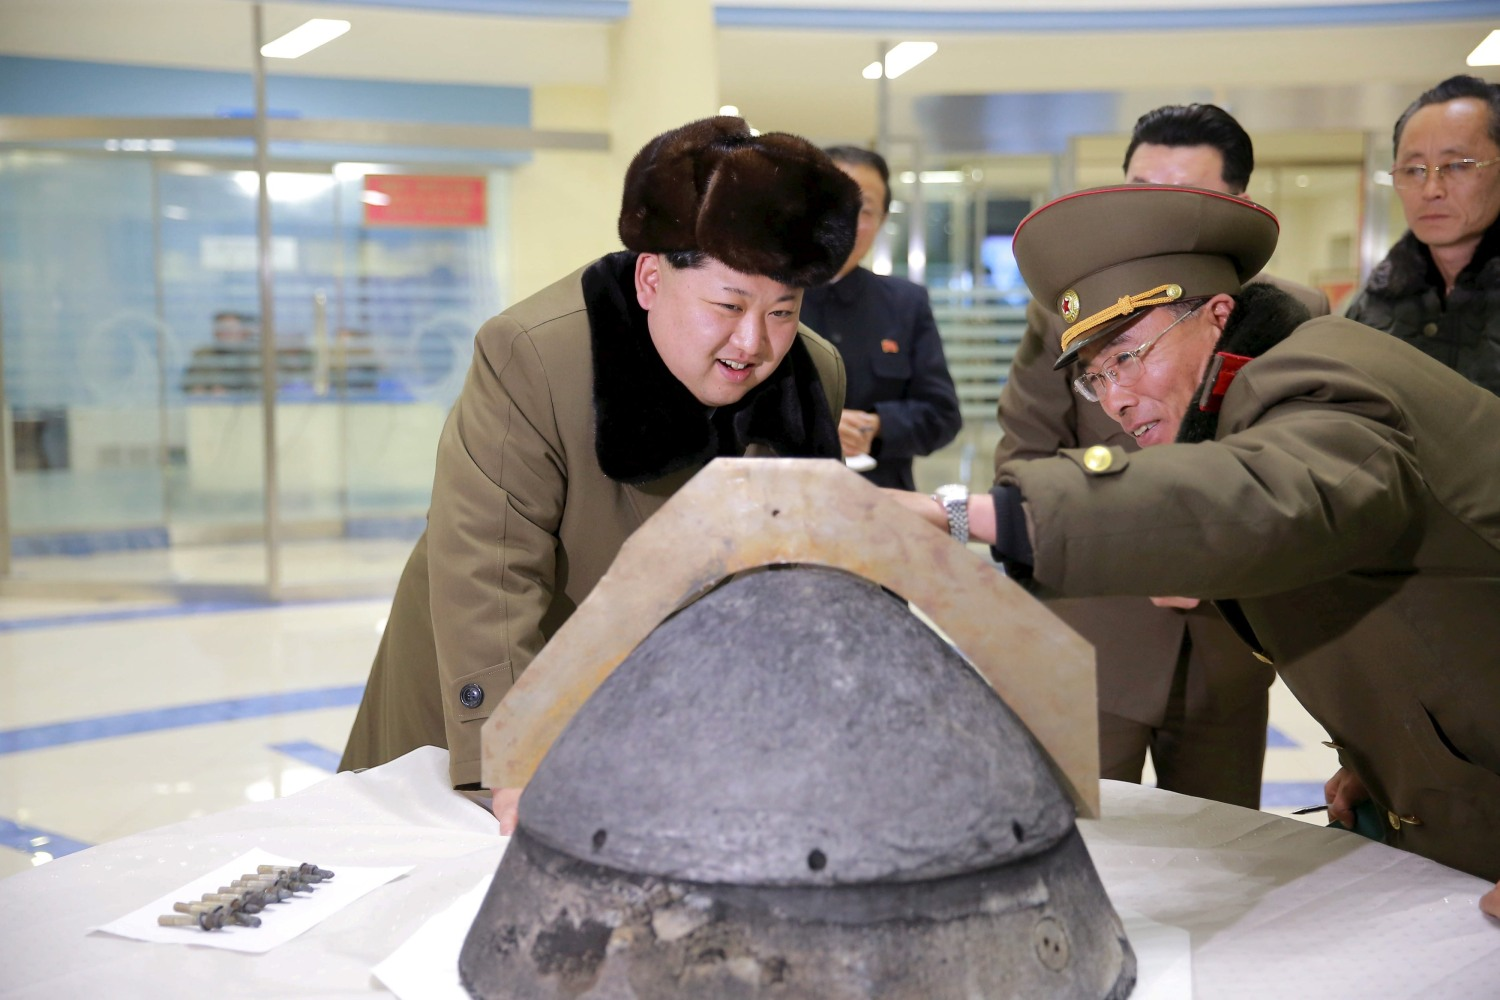 Seoul says Pyongyang failed in missile test